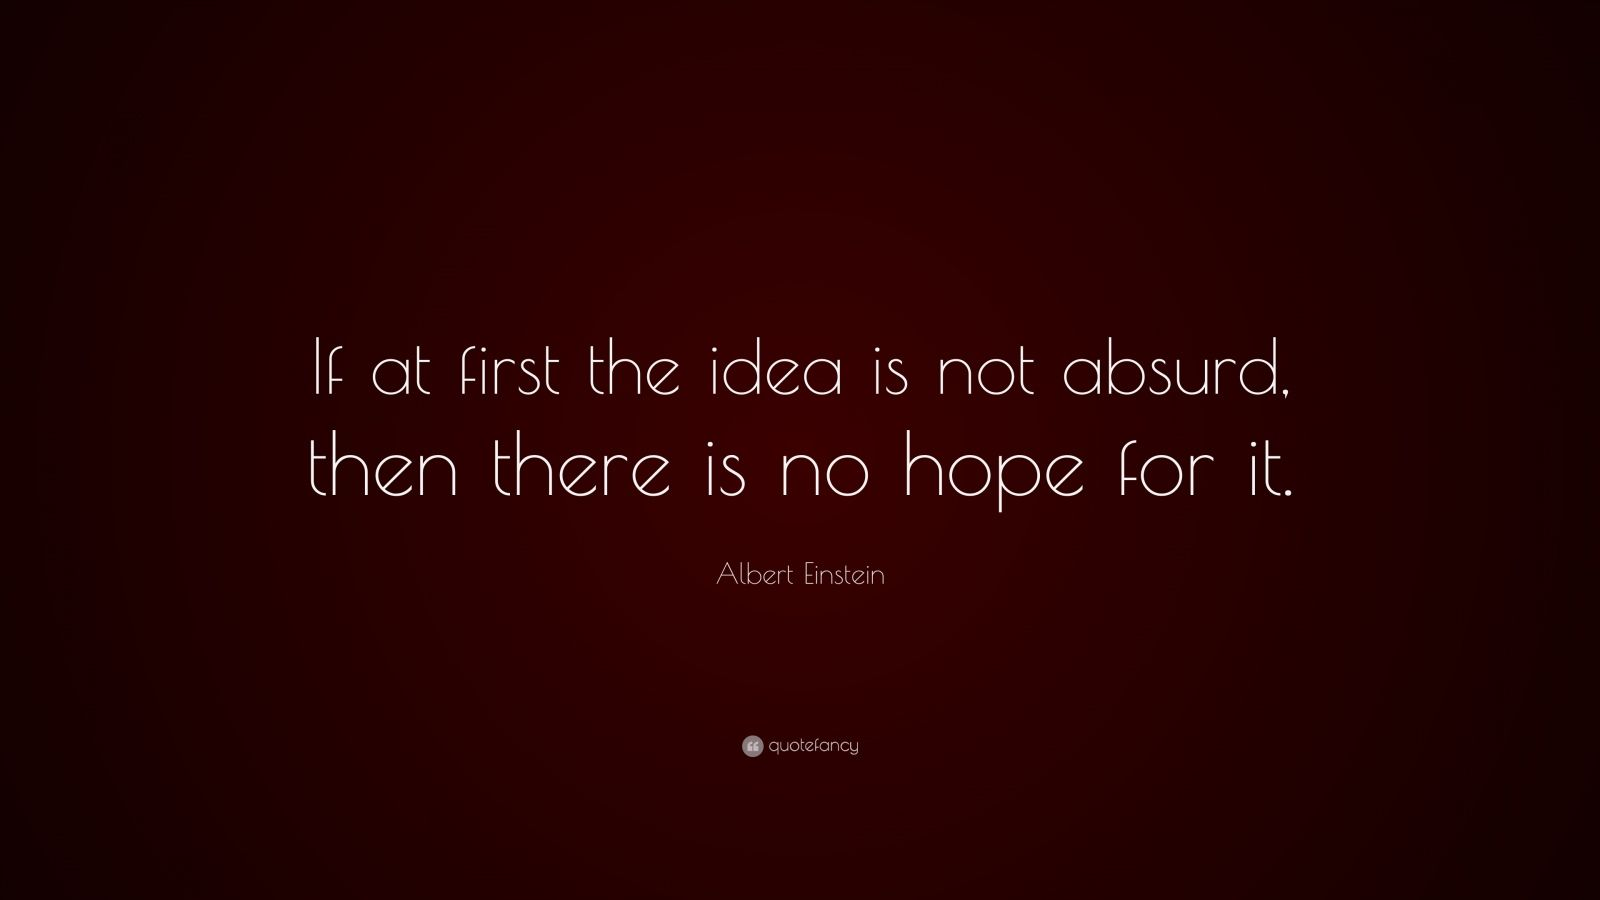 Albert Einstein Quote: If at first the idea is not absurd, then ...